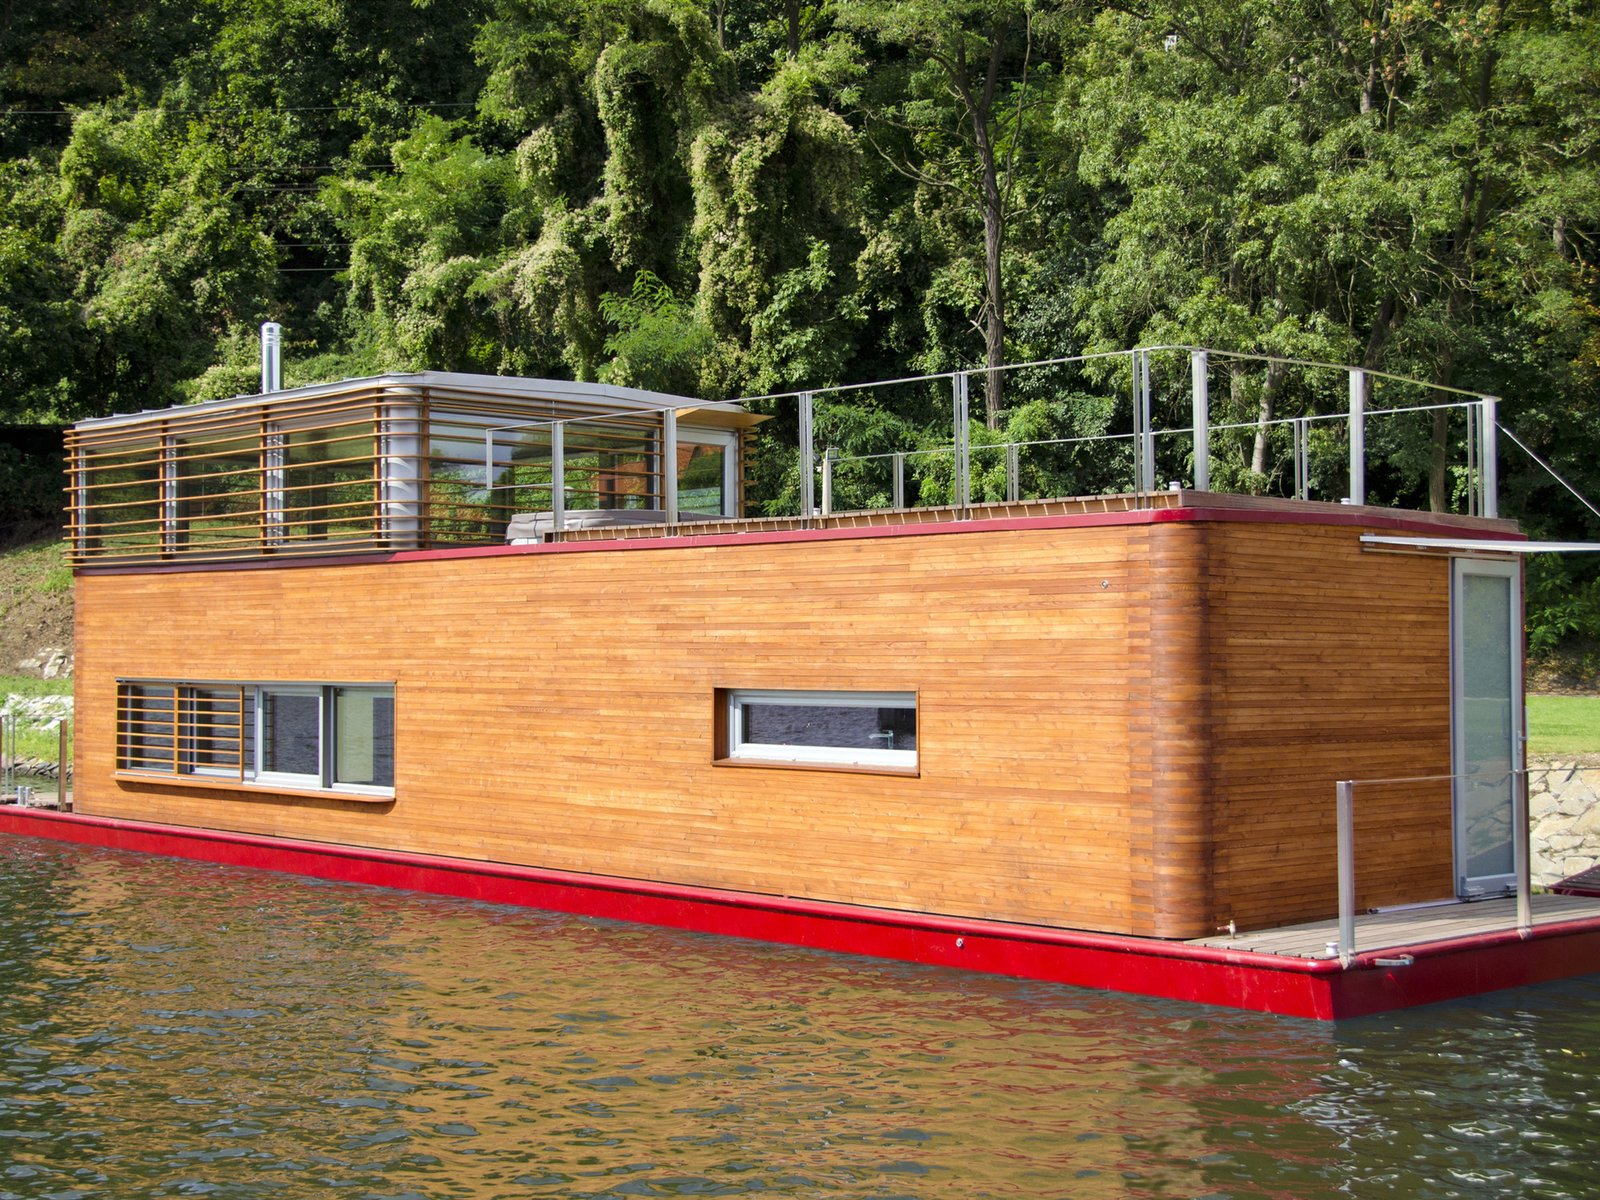 floating homes multilevel houseboat with wood siding and red trim